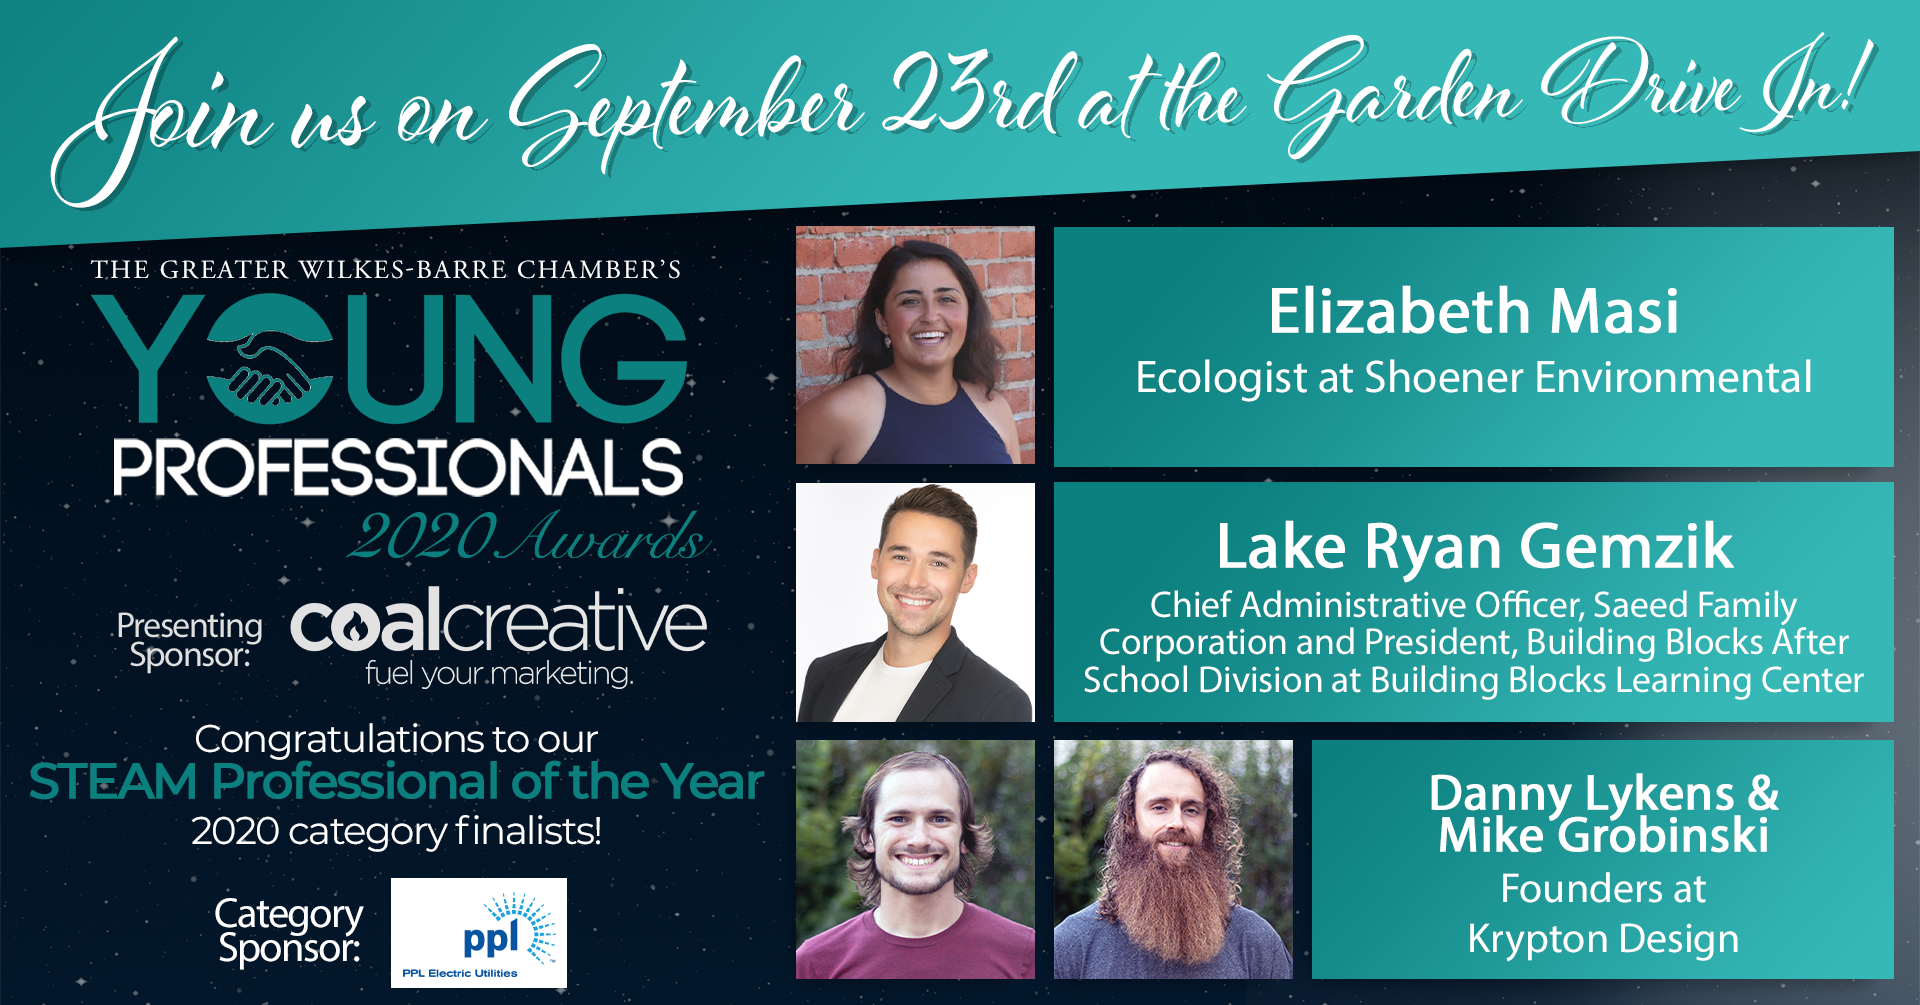 Meet the 2020 Young Professionals Category Finalists for STEAM Professional of the Year!